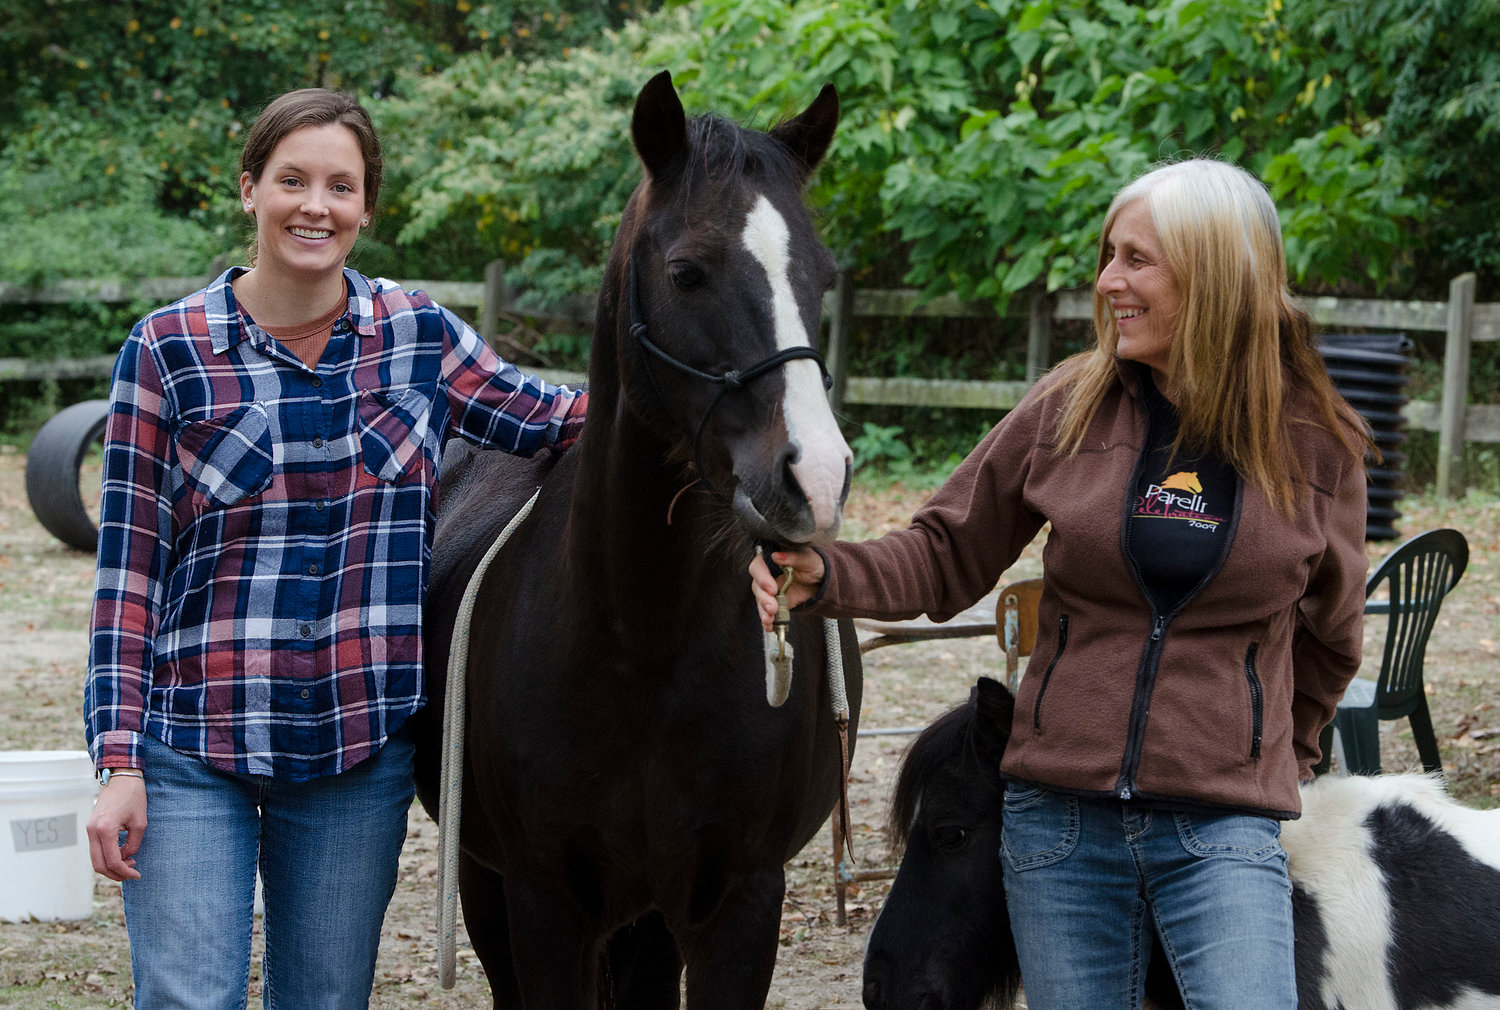 Jessica Veroline (left), a mental health professional, and Carol Ann Silva, who runs Medicine Horse equine therapy center, work together to pair those in recovery or treatment with horses who can play a critical role.